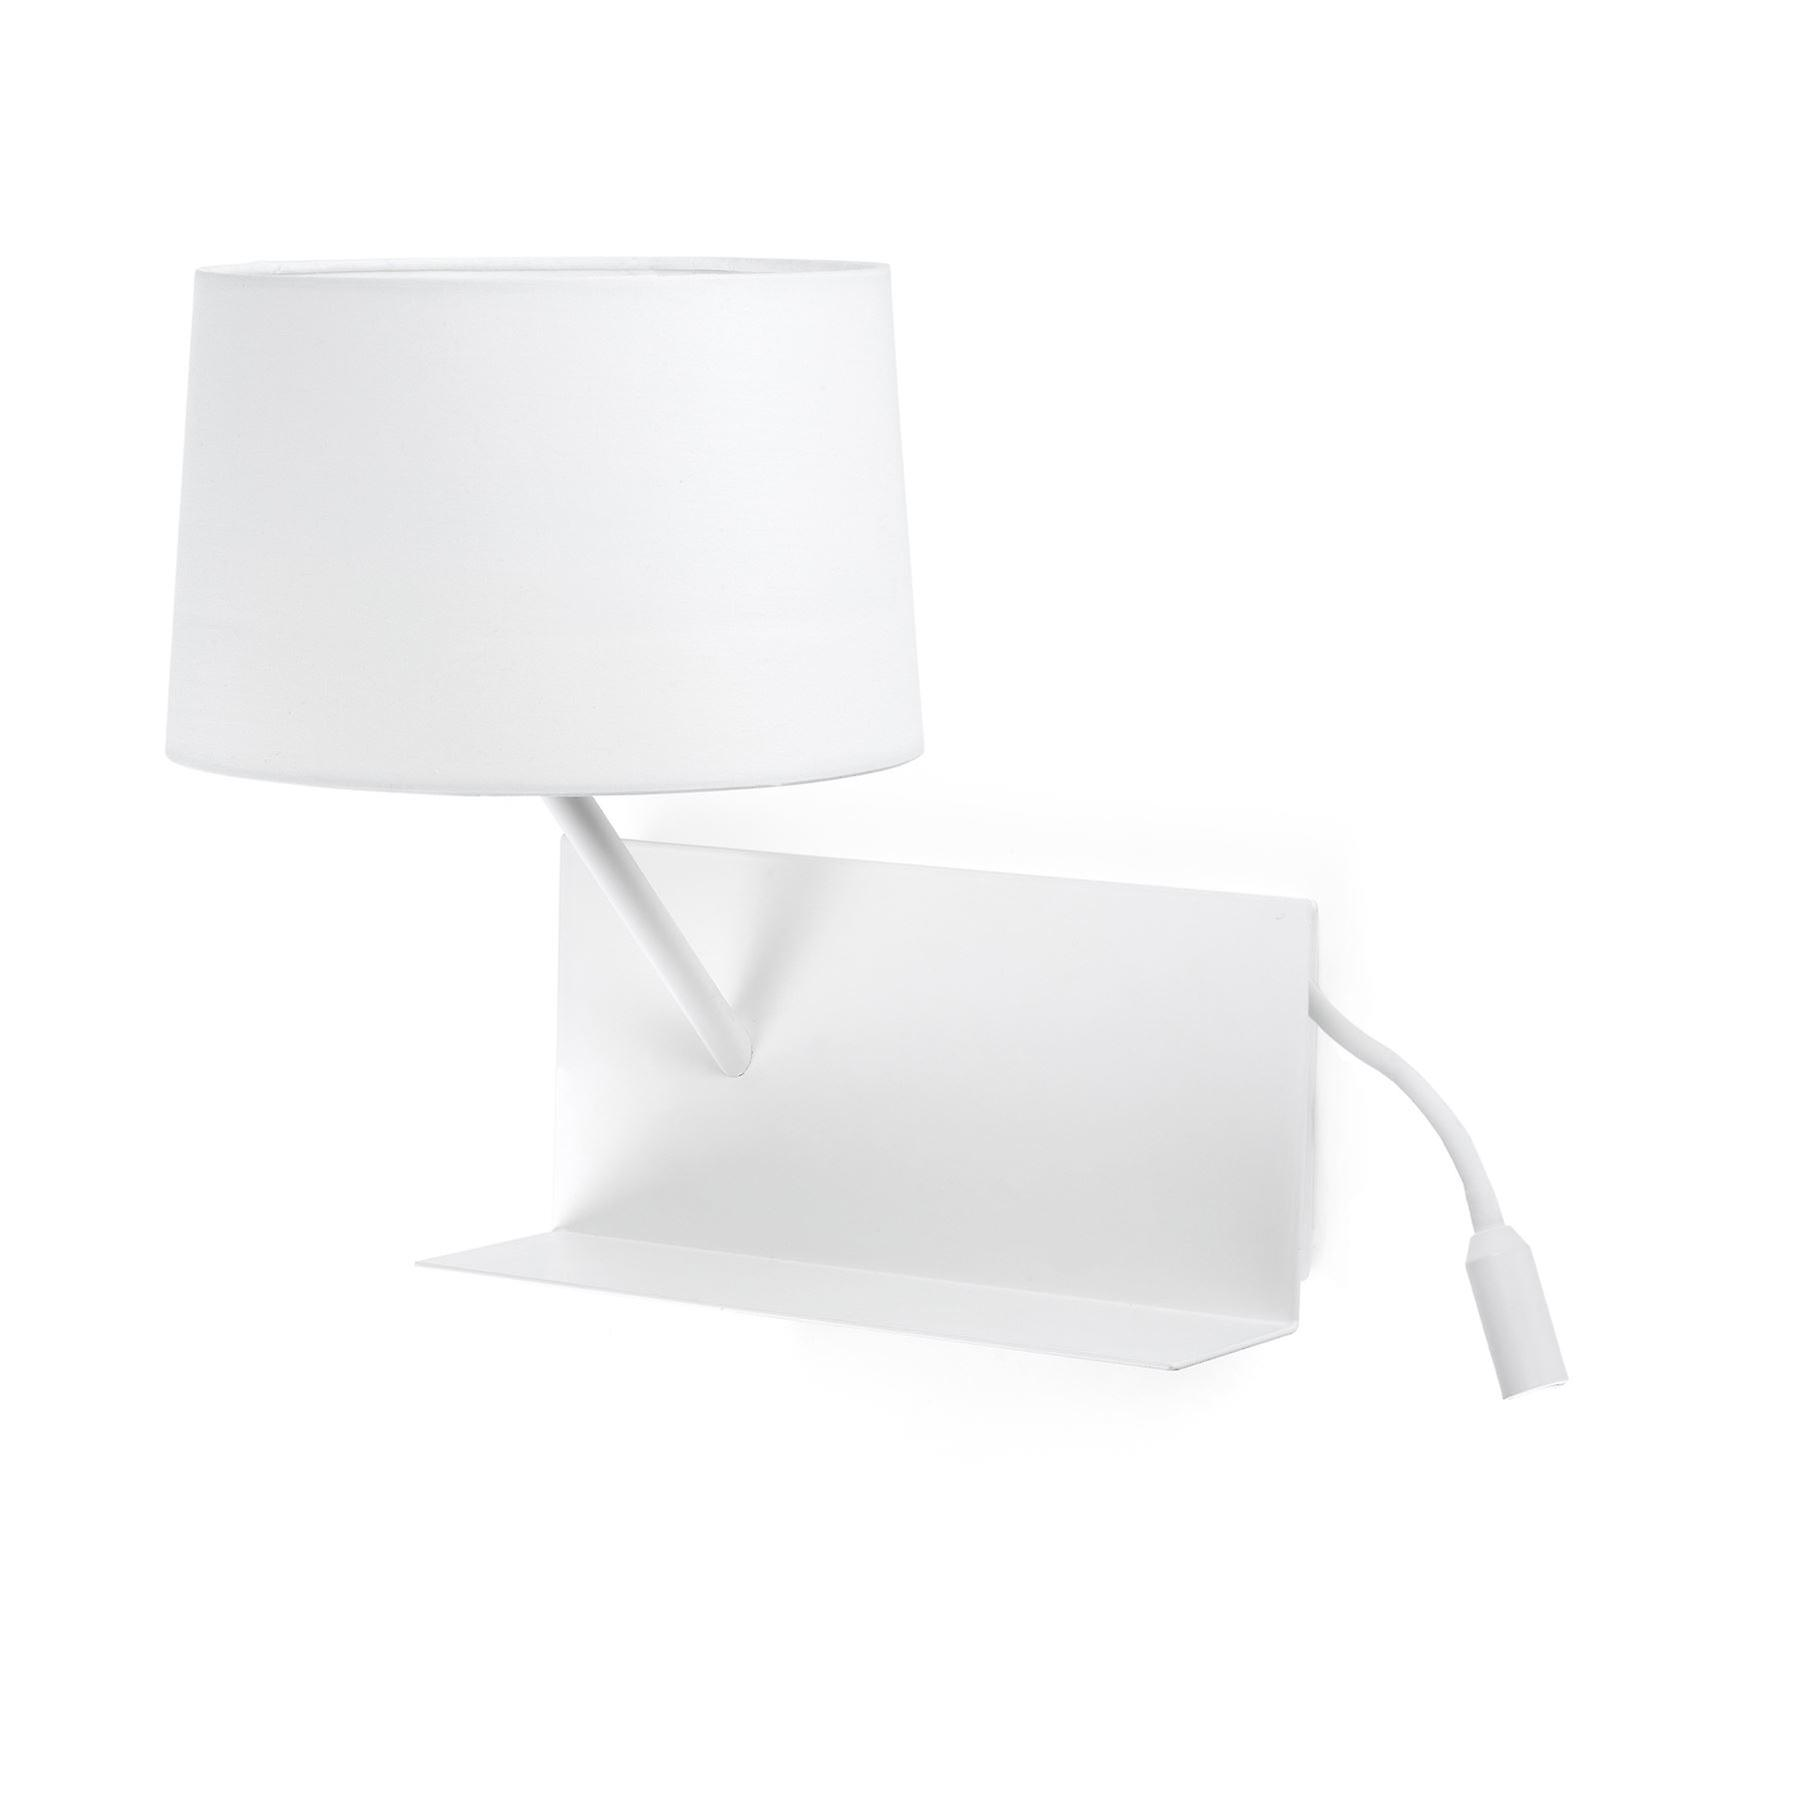 Faro - Handy blanc Wall Lamp With LED Reading Lamp & USB Charger Left Side FARO28415